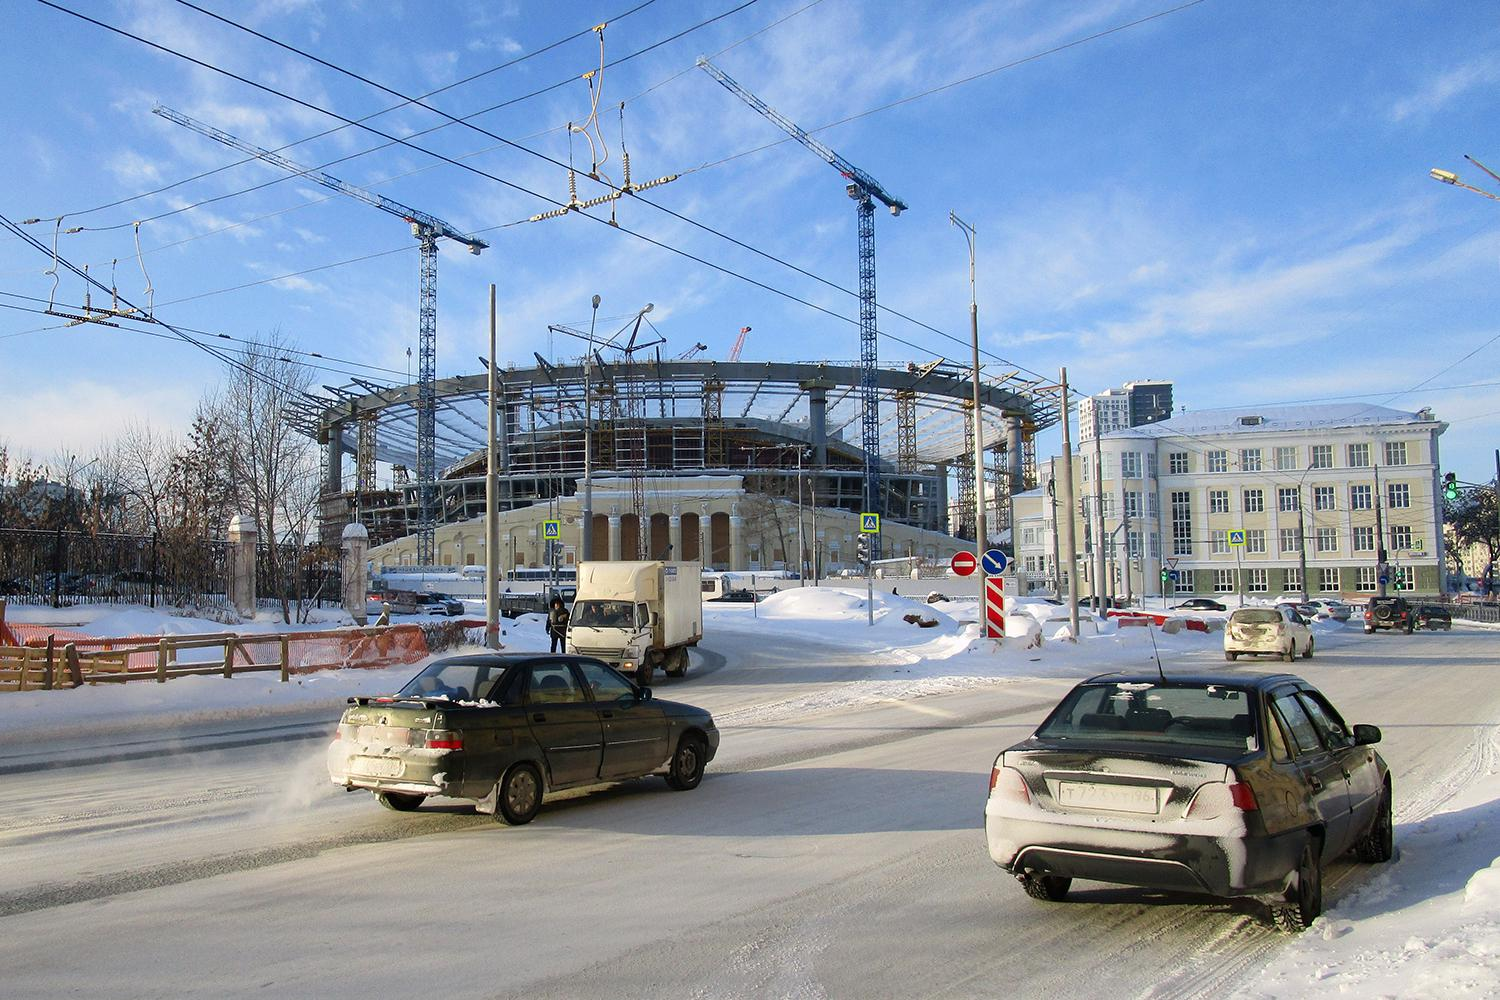 The Ekaterinburg Arena, a World Cup 2018 venue, in Ekaterinburg, Russia, under construction in January 2017.